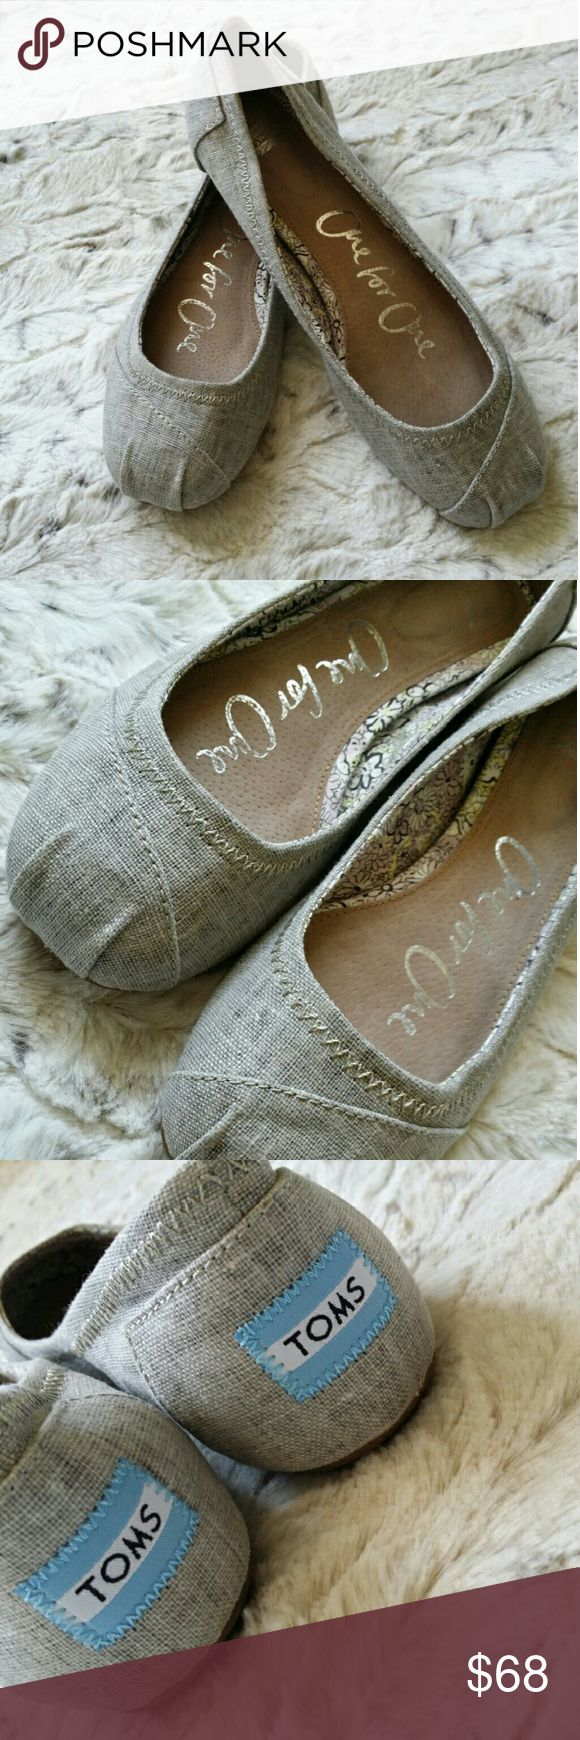 Toms Ballet Gray Oat Linen Flats EUC Only worn inside. Great to wear any day of the week for work or play! Perfect neutral color to go with your basic skirts or Lularoe prints! Beautiful addition to any fashionistas closet!  Note : Very slight wear visible on bottom of shoes as shown in photo. Also, some fading of size (w5) inside shoes-can provide photo if interested.  Smoke/Pet Free Home  No Trades TOMS Shoes Flats & Loafers